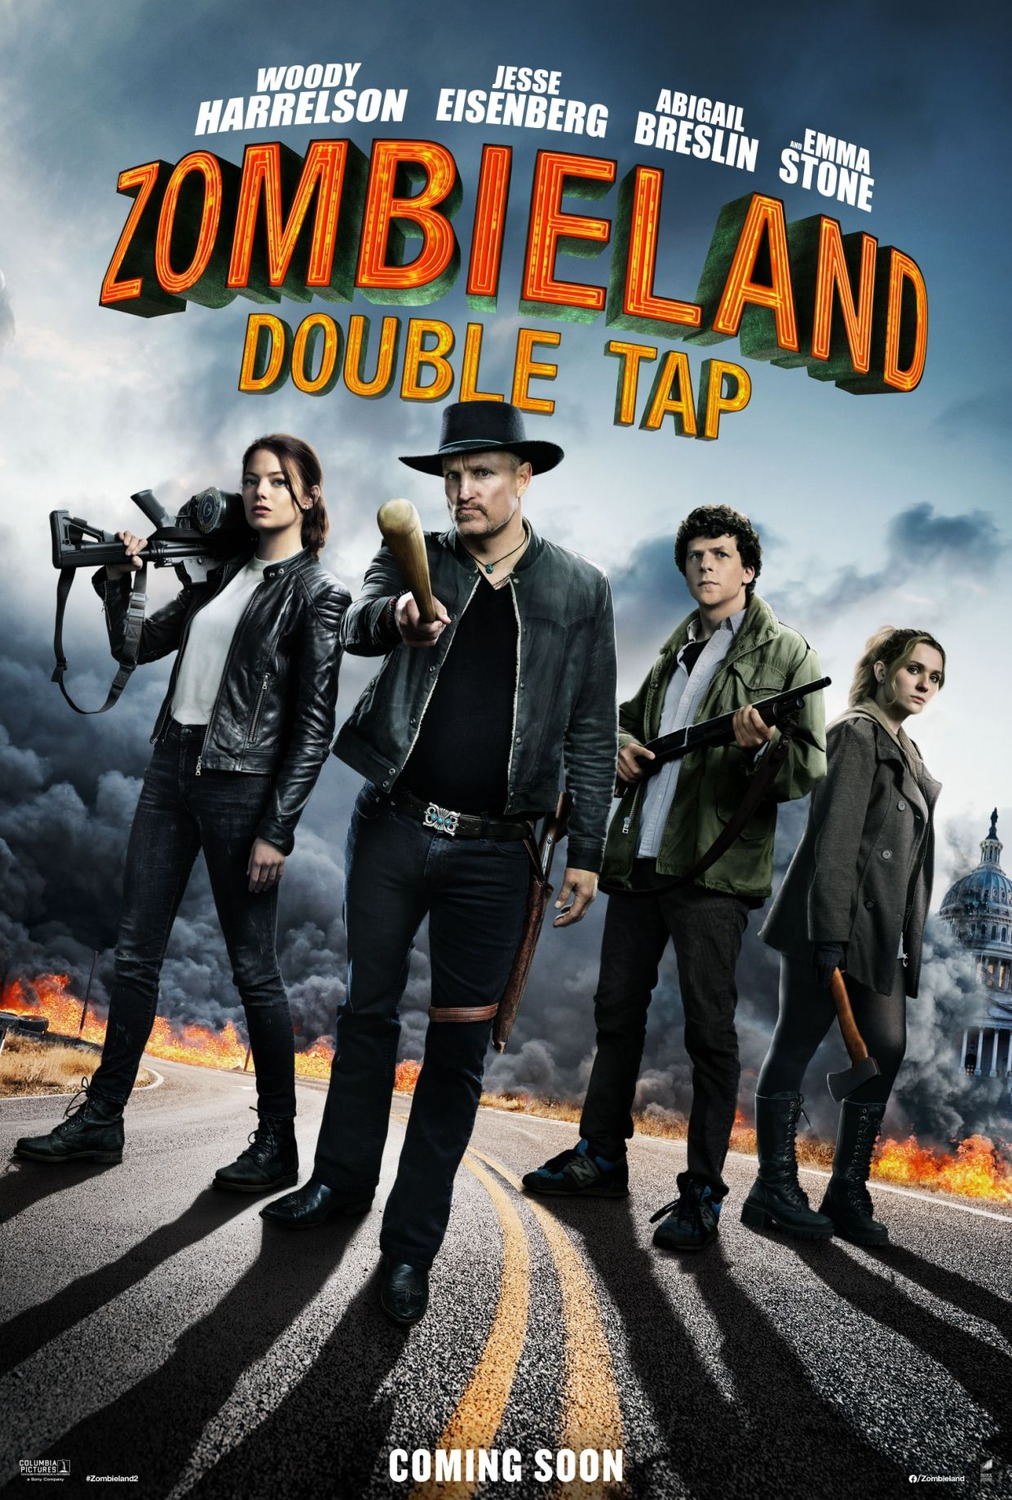 Zombieland: Double Tap film review: back for gore ten years later